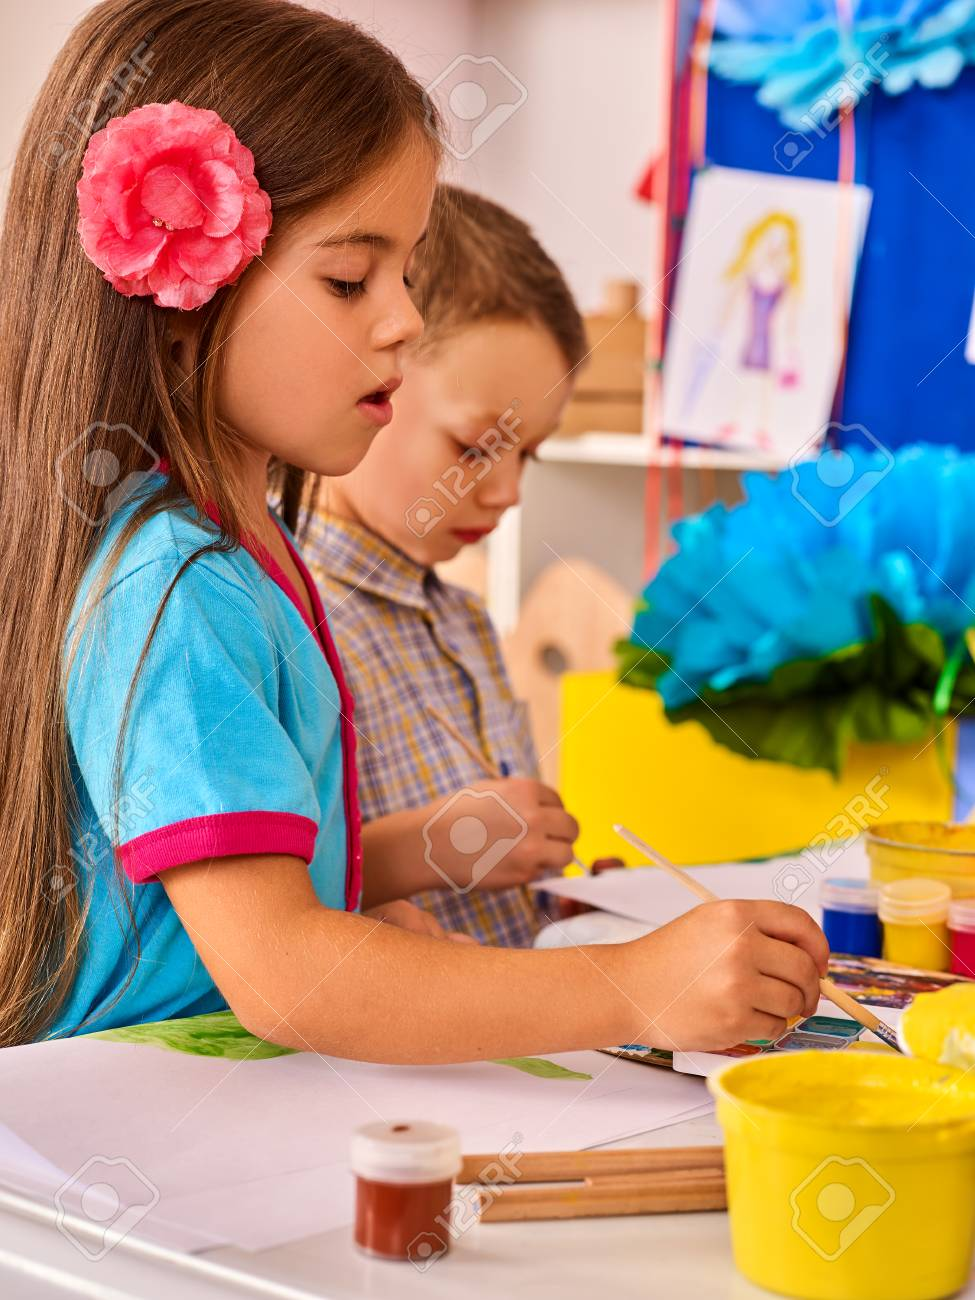 Small Students Painting In Art School Class Child Drawing By